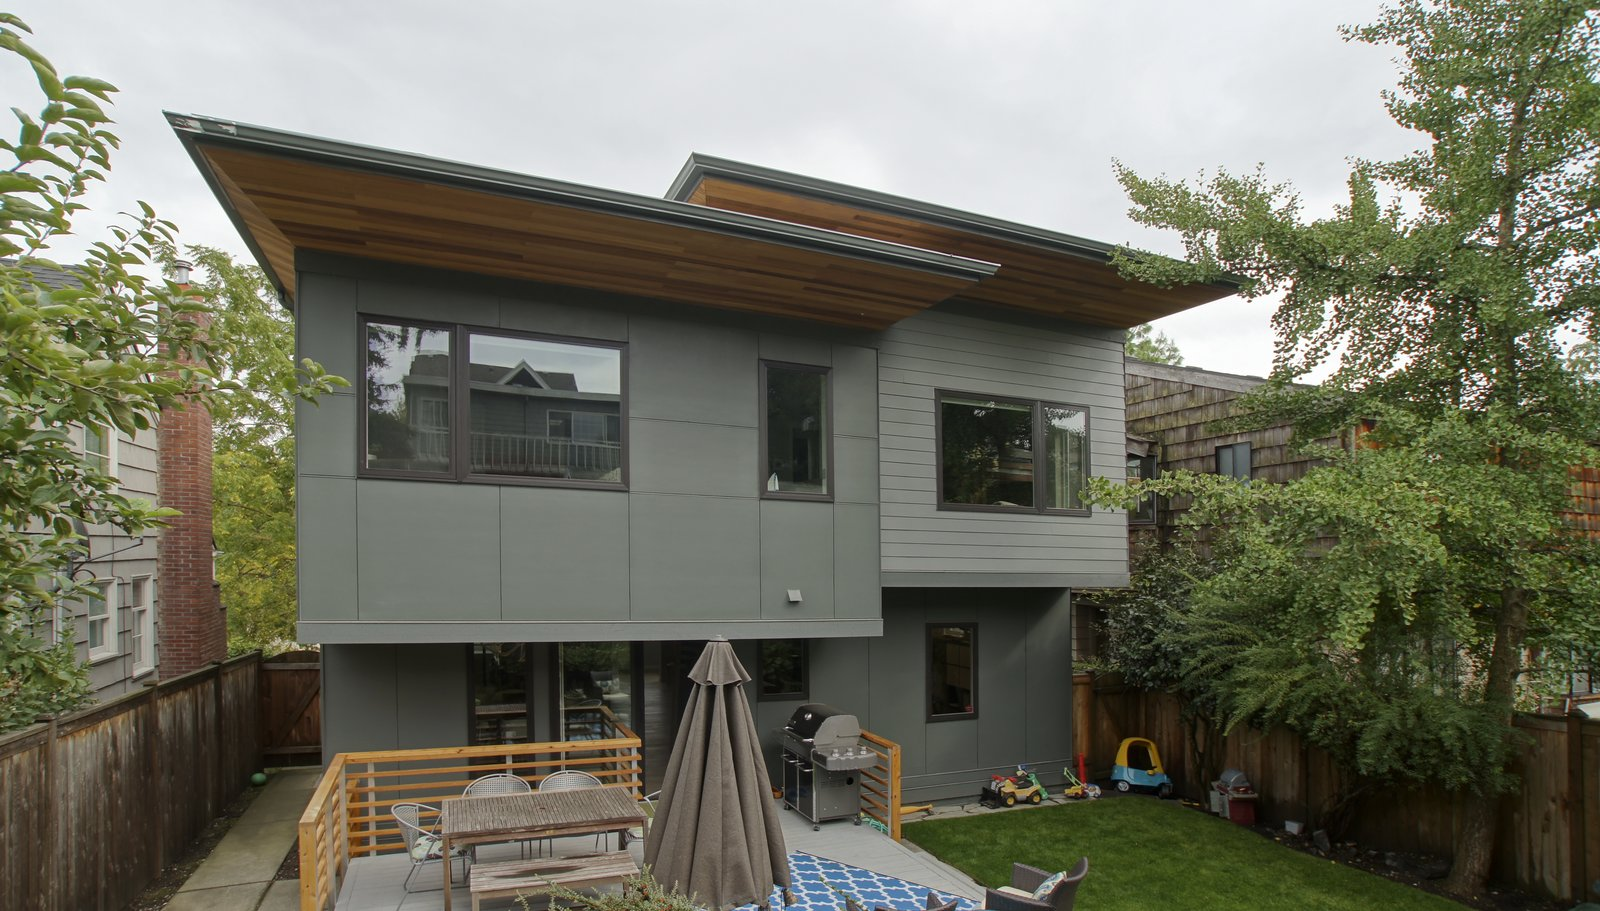 A new deck and connection to the exterior was created in order to take advantage of the new open plan.  Eave House by Atelier Drome